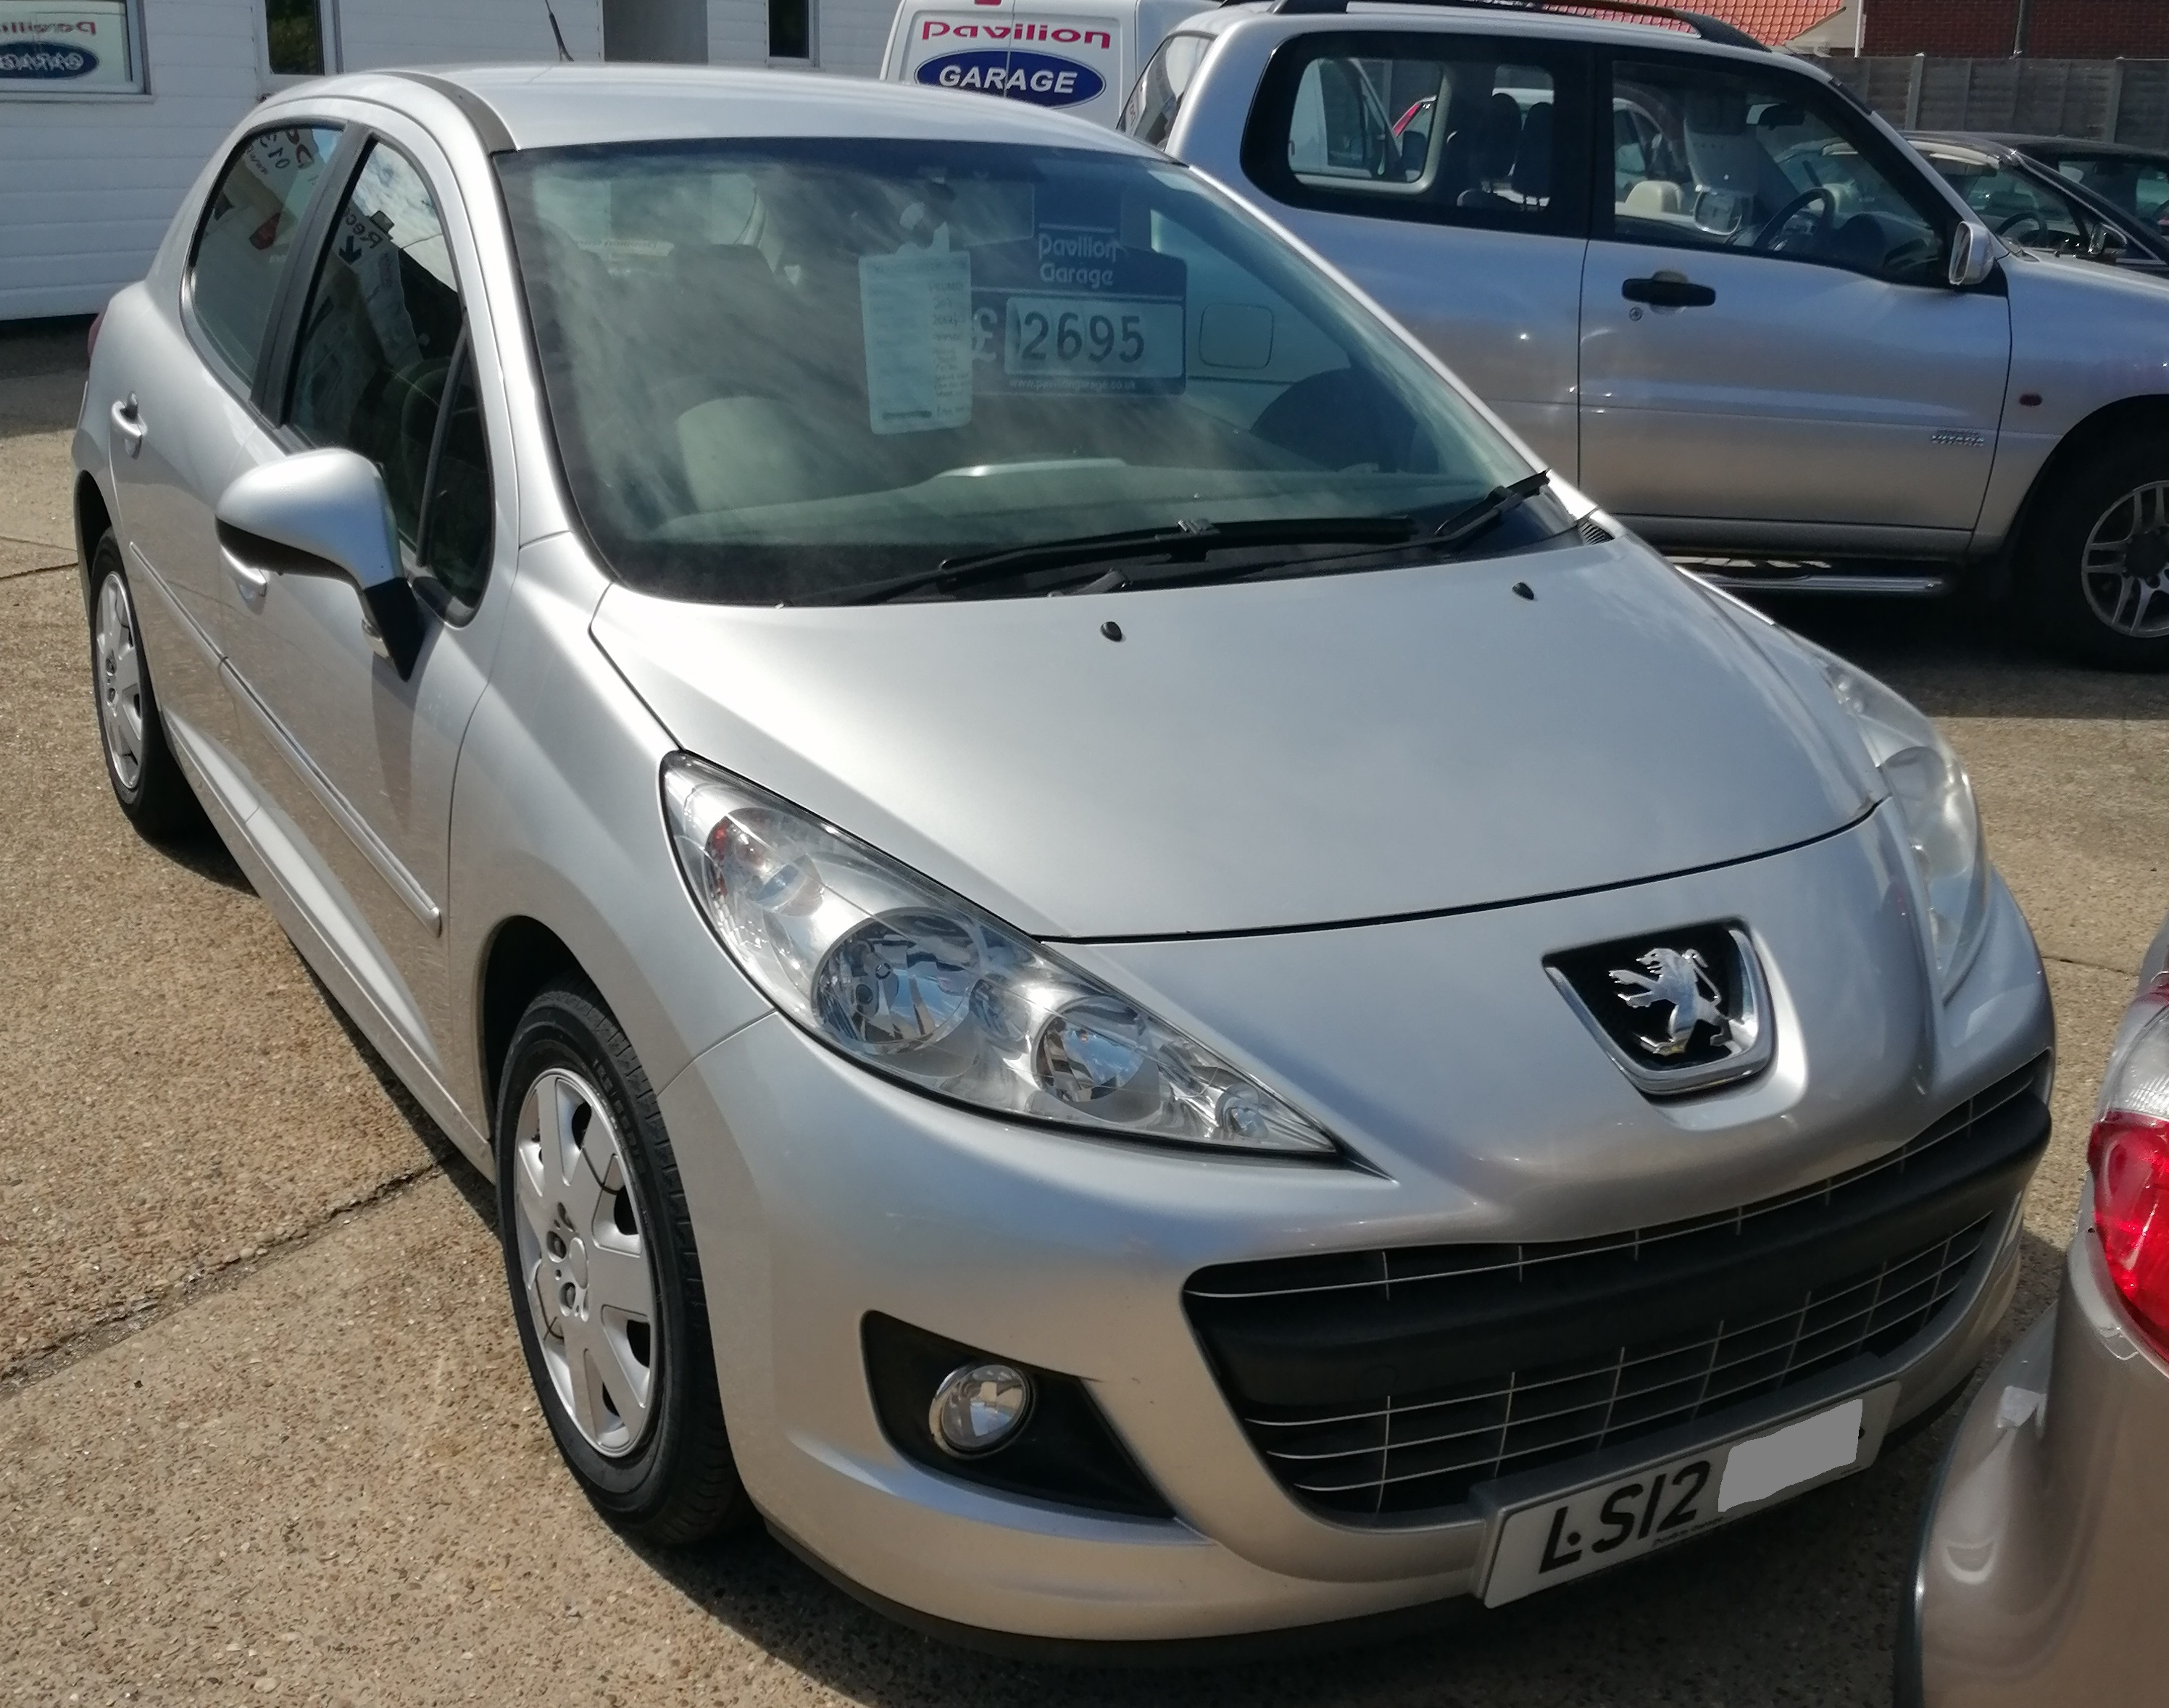 Peugeot 207 Active 1360cc - Petrol 2012 / 12 99,900 miles Service History Cam Belt Replaced Spare Key £160 per year Road Tax £2695